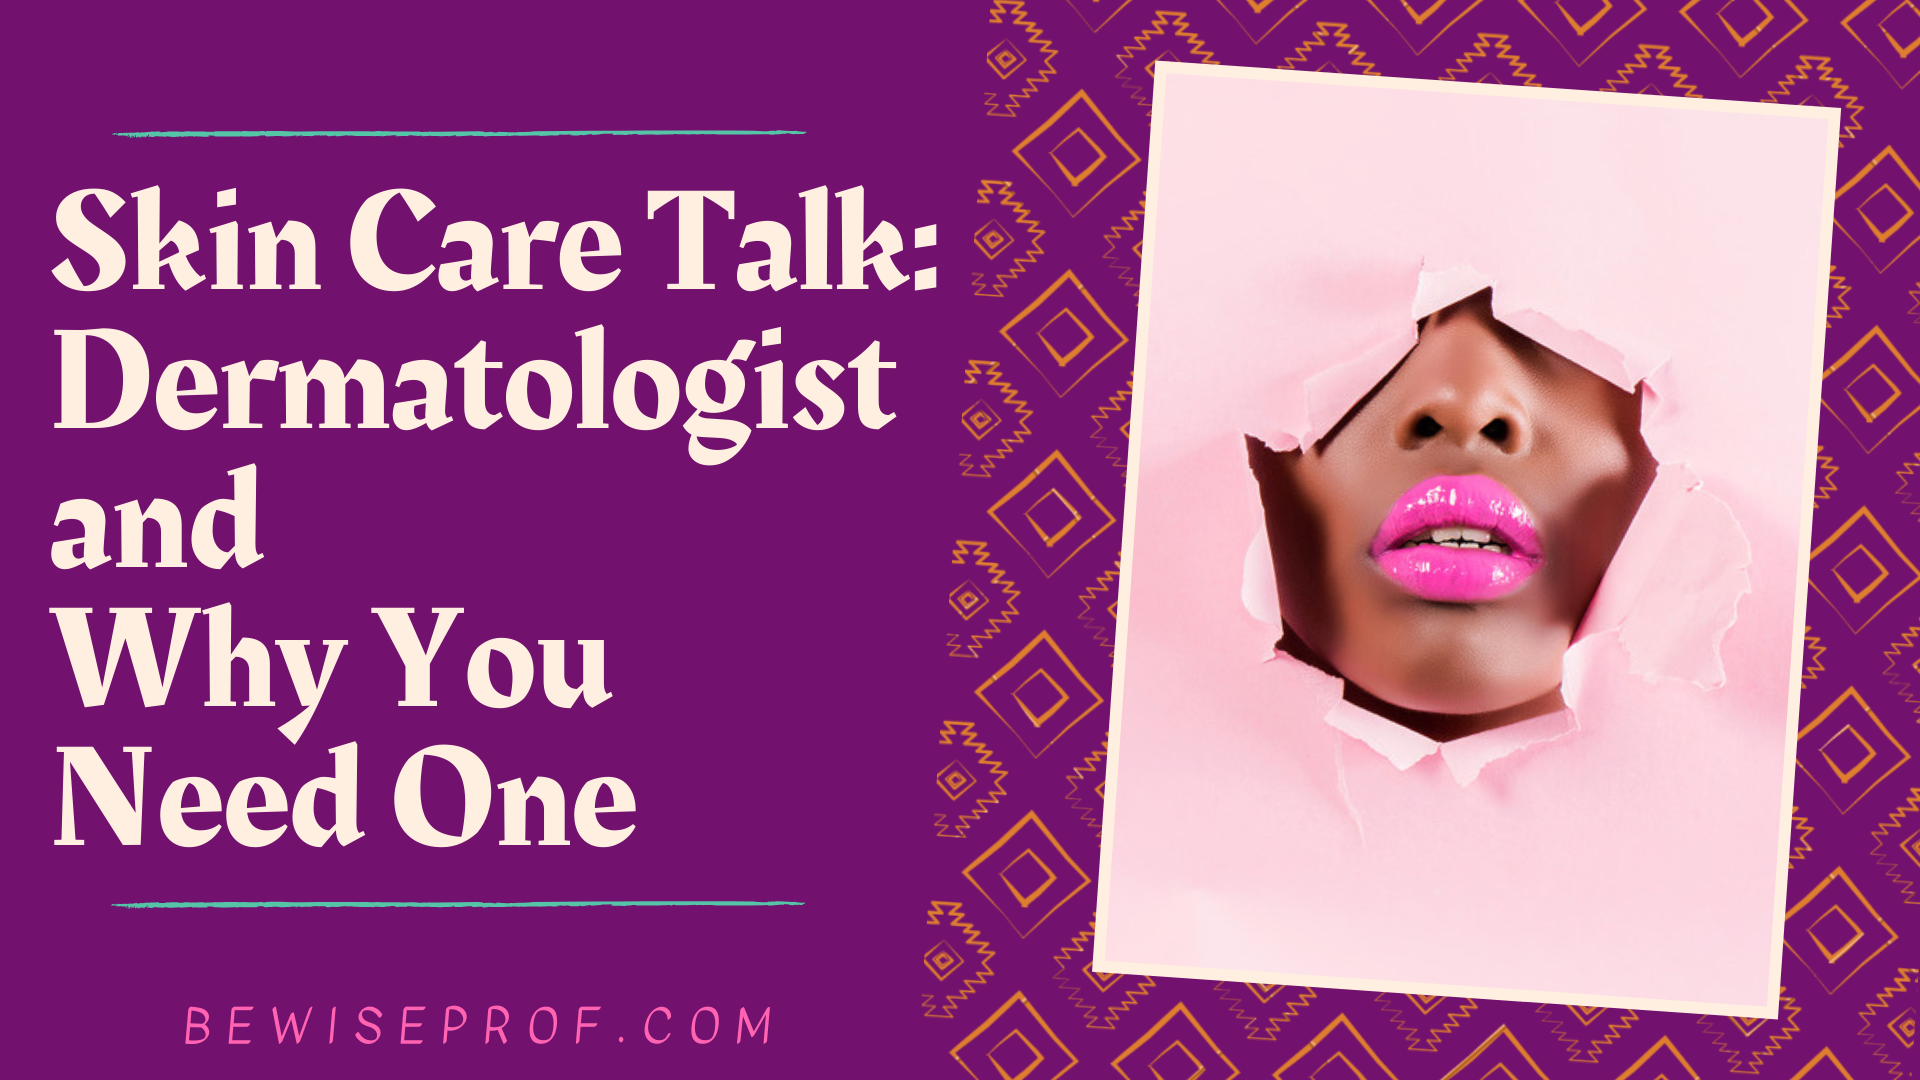 Photo of Skin Care Talk: Dermatologist and Why You Need One